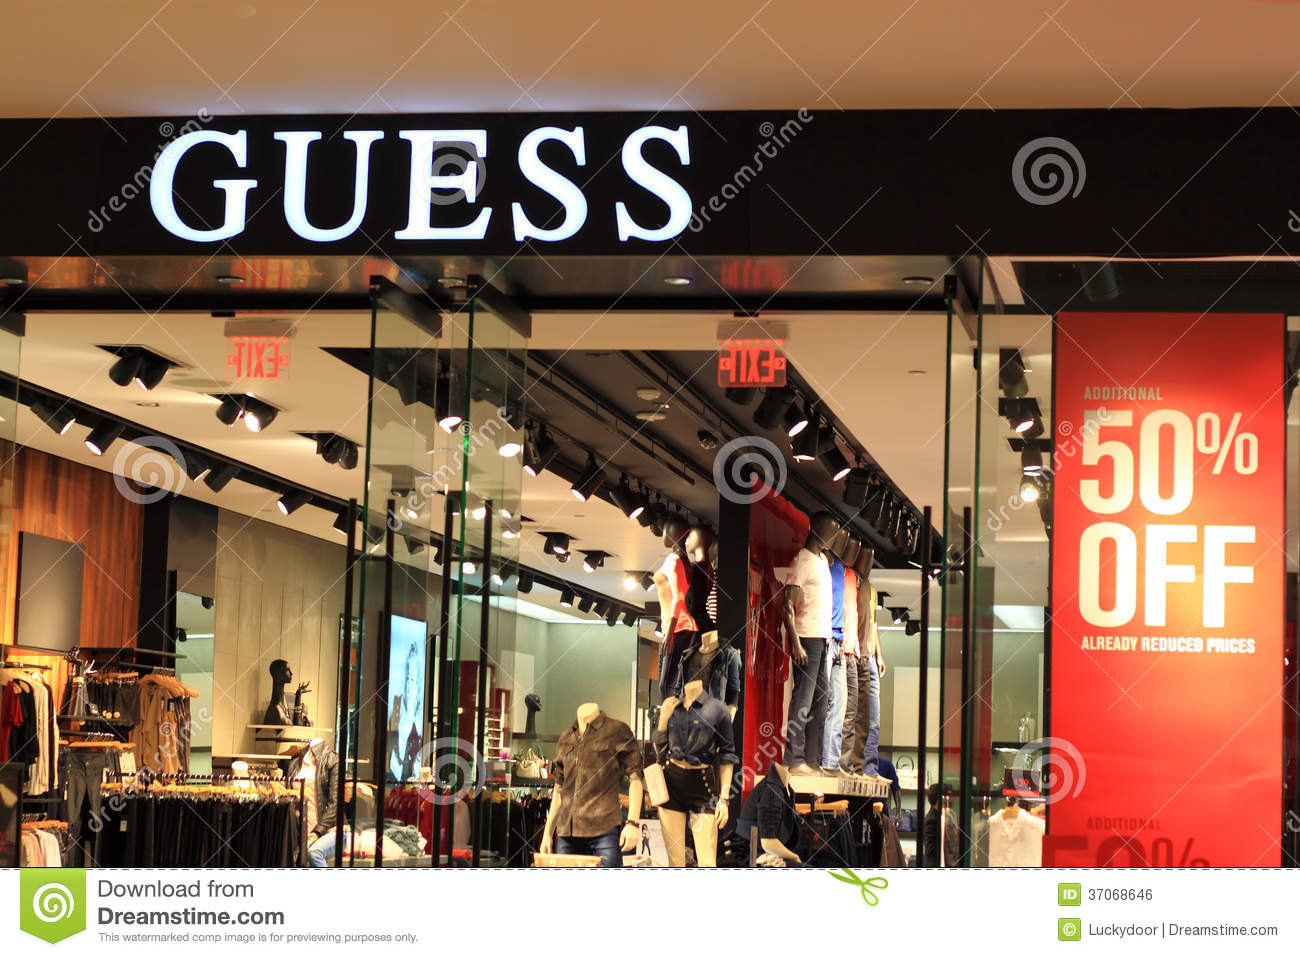 Guess is American upscale clothing line brand. Guess also markets